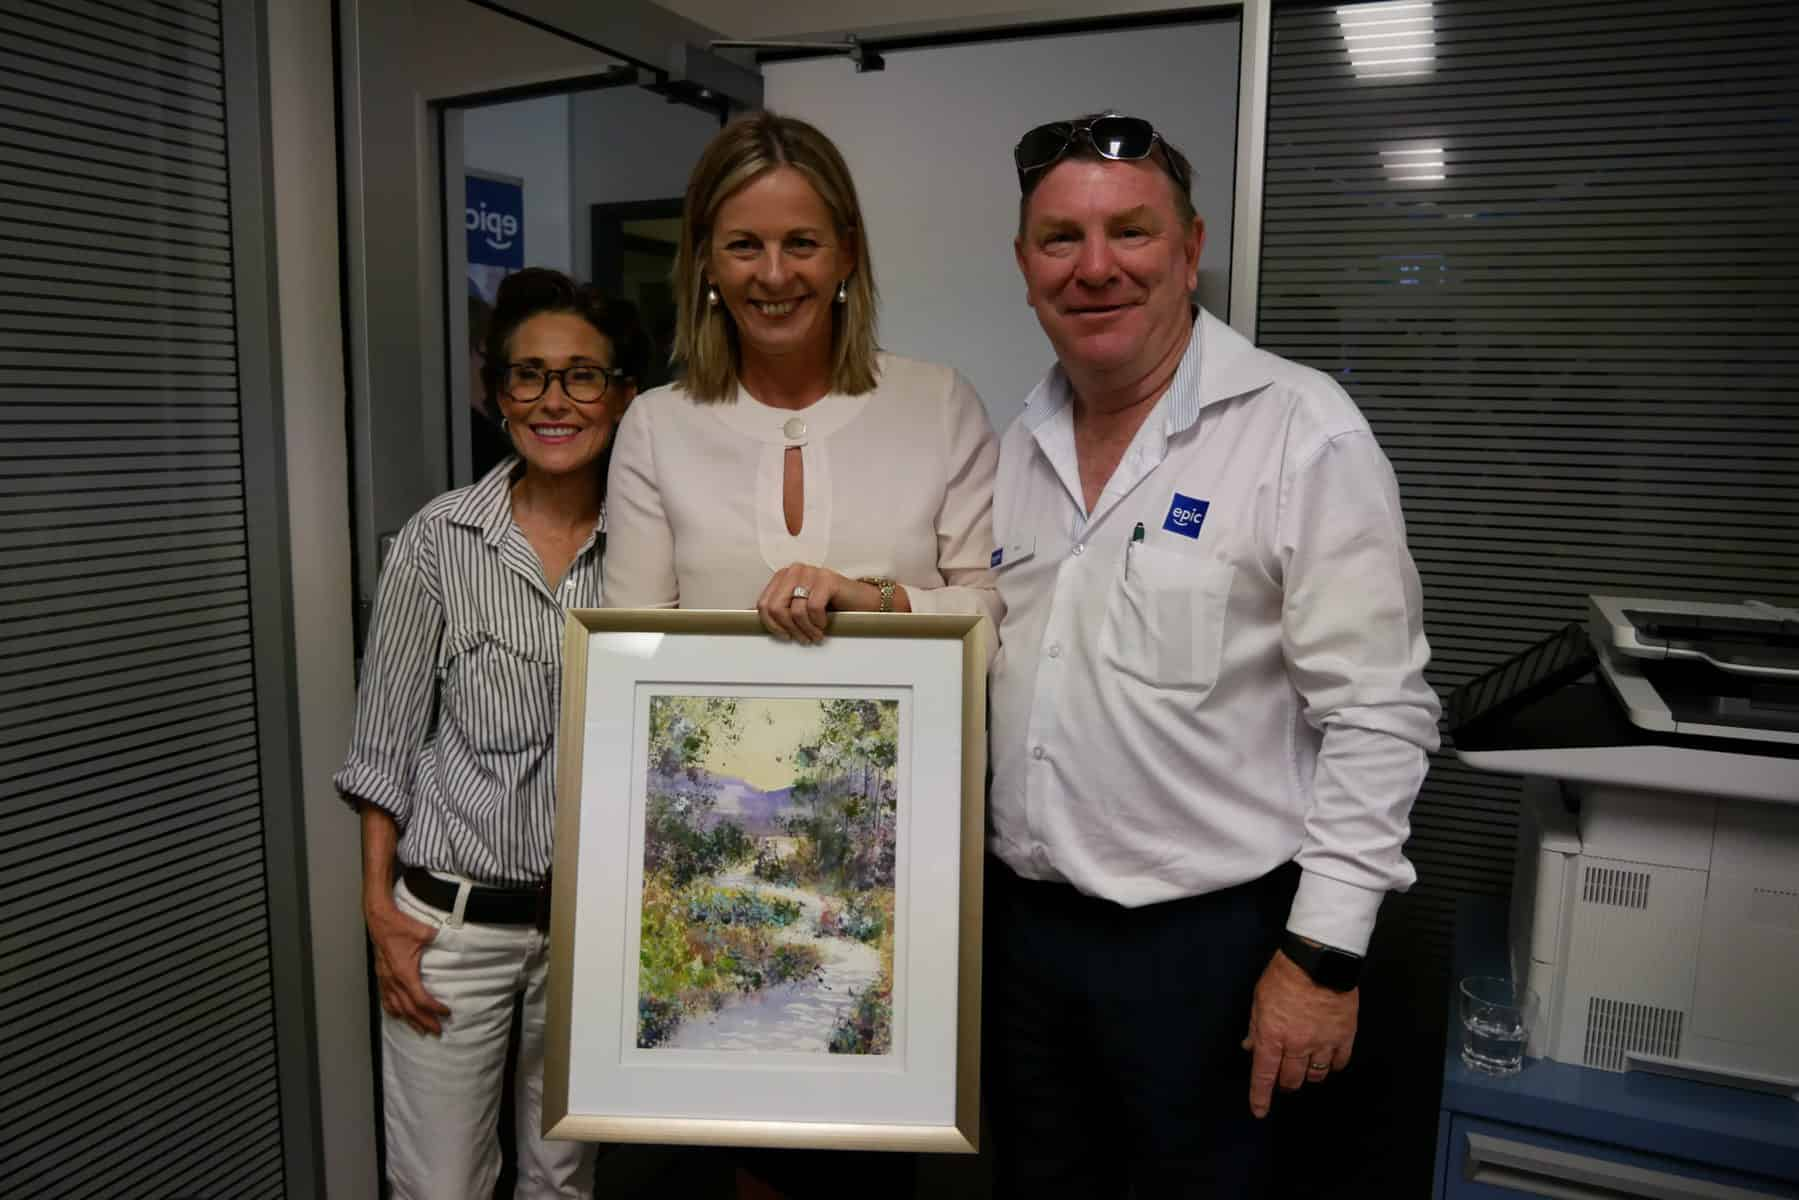 Helene, MP Angie Bell and EPIC employee Pat stand together holding Helene's artwork